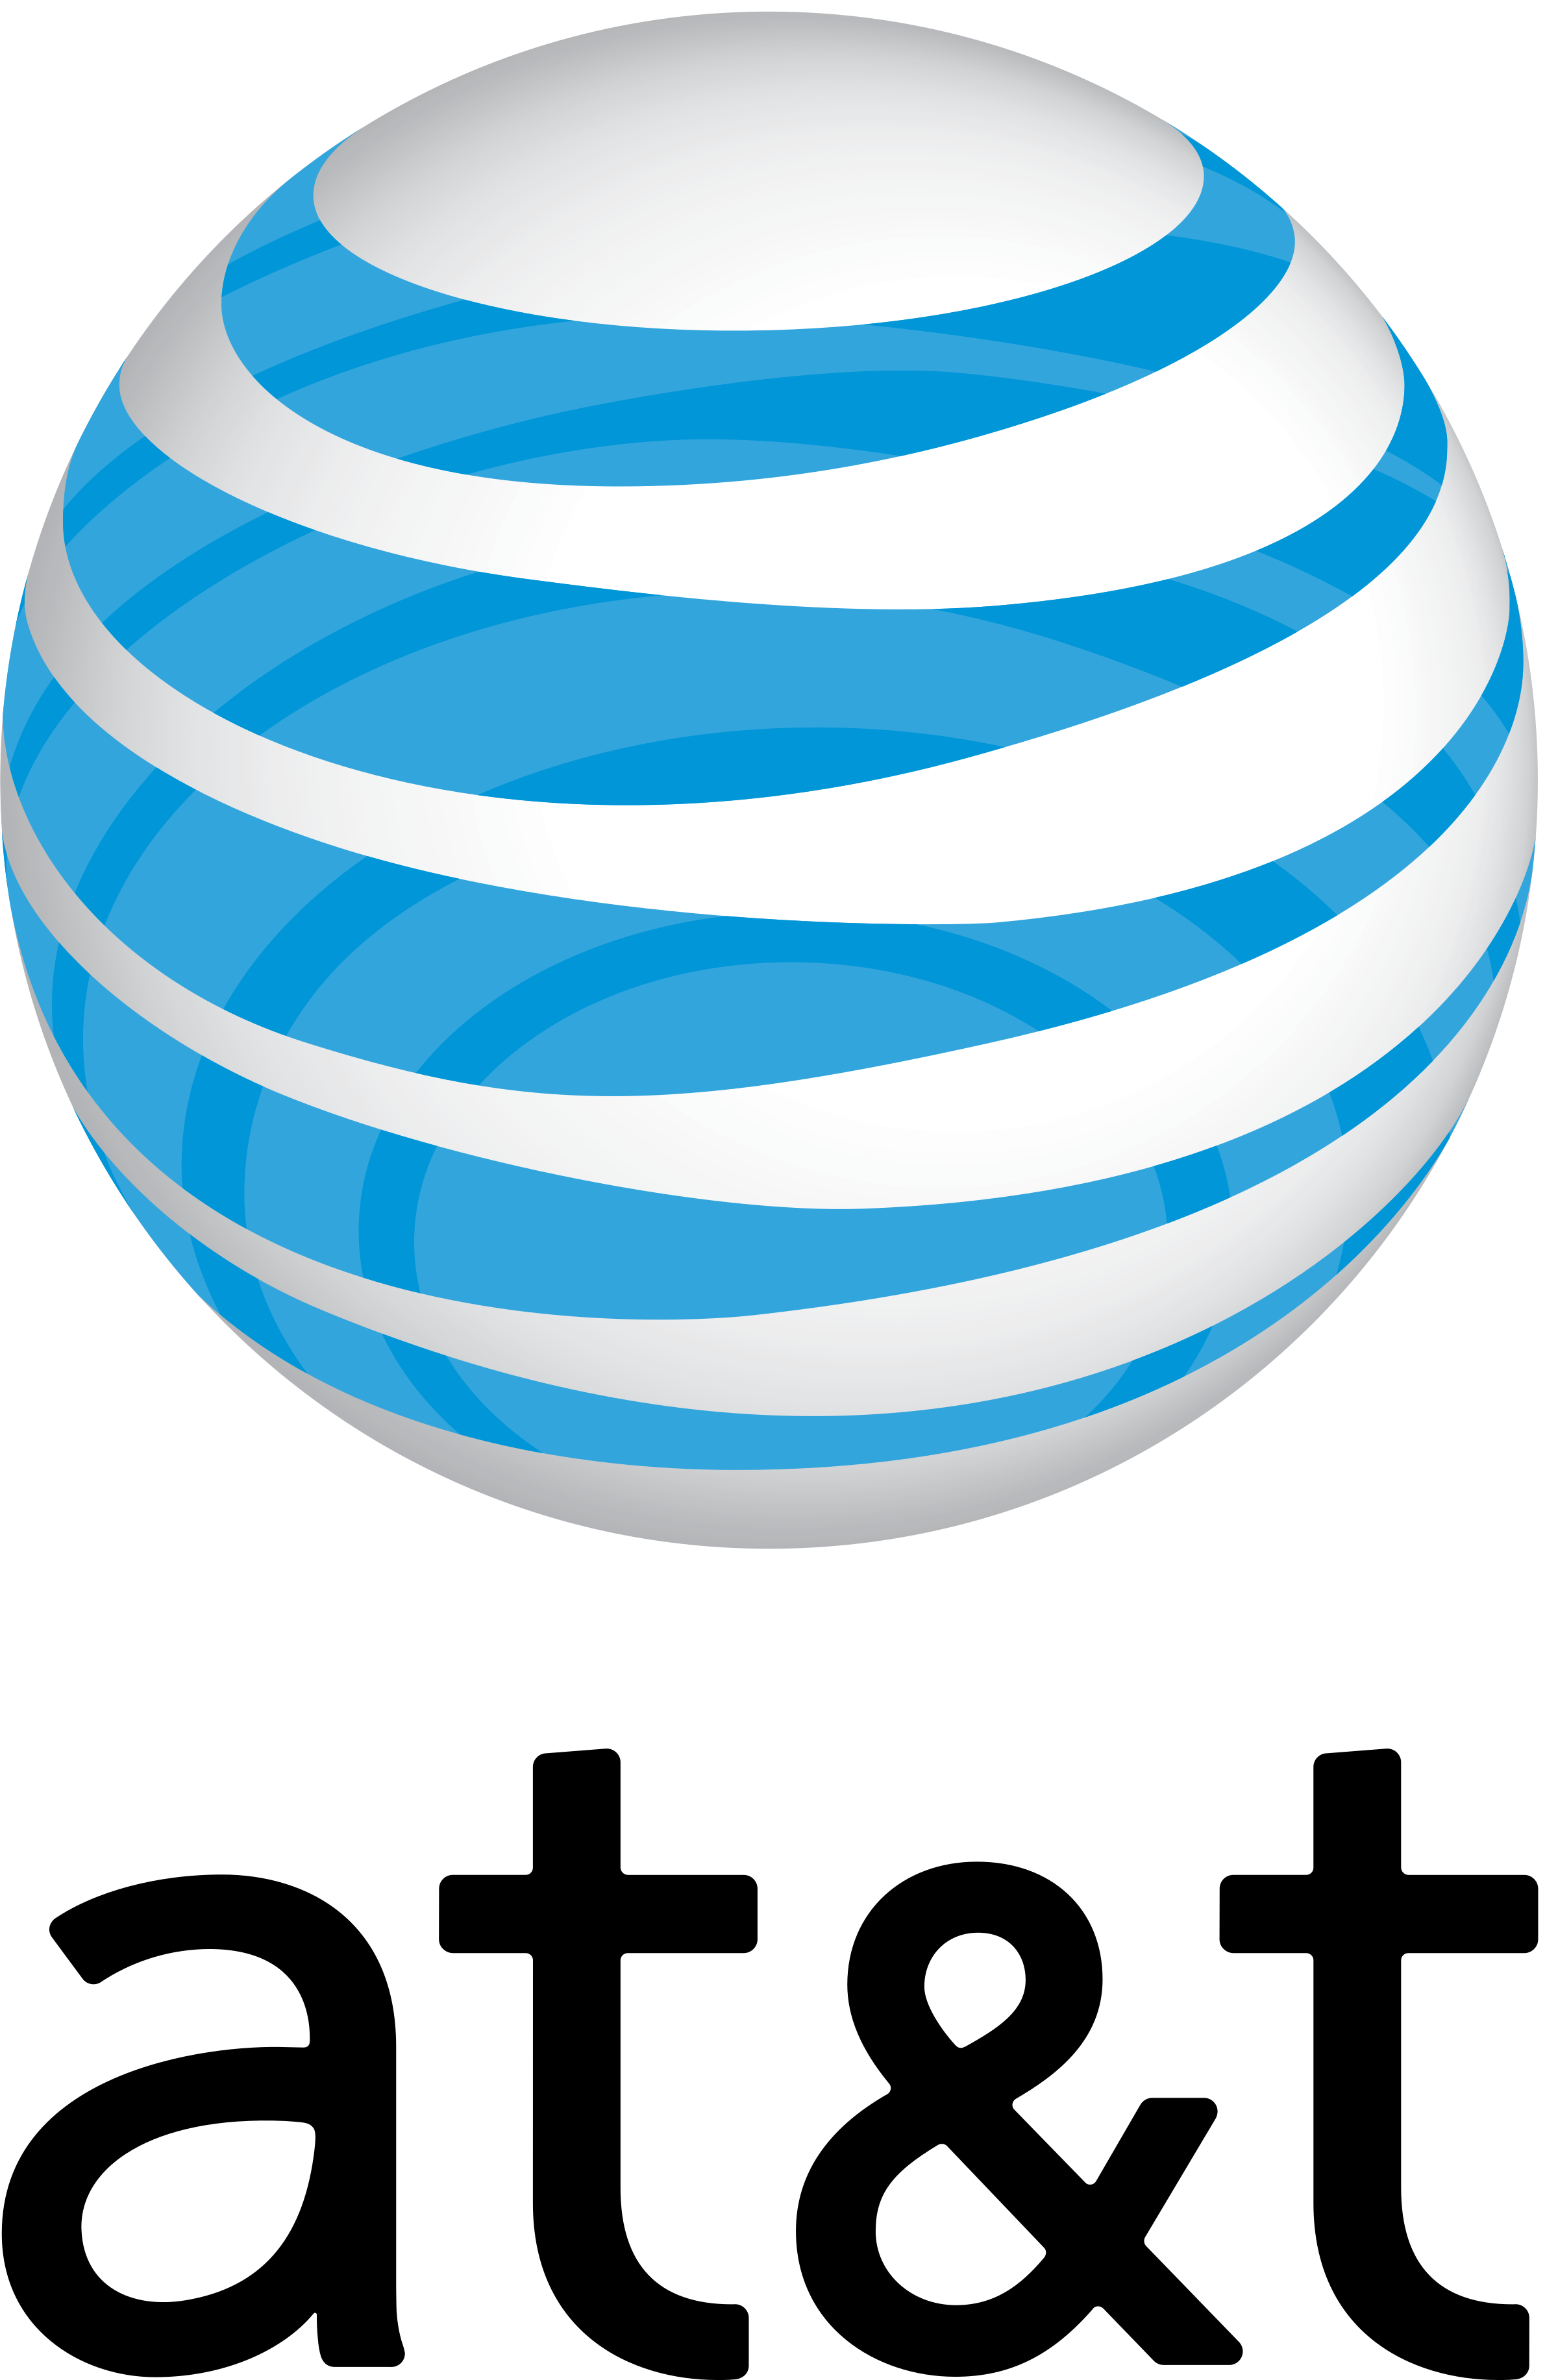 At&t logo png. At t transparent svg